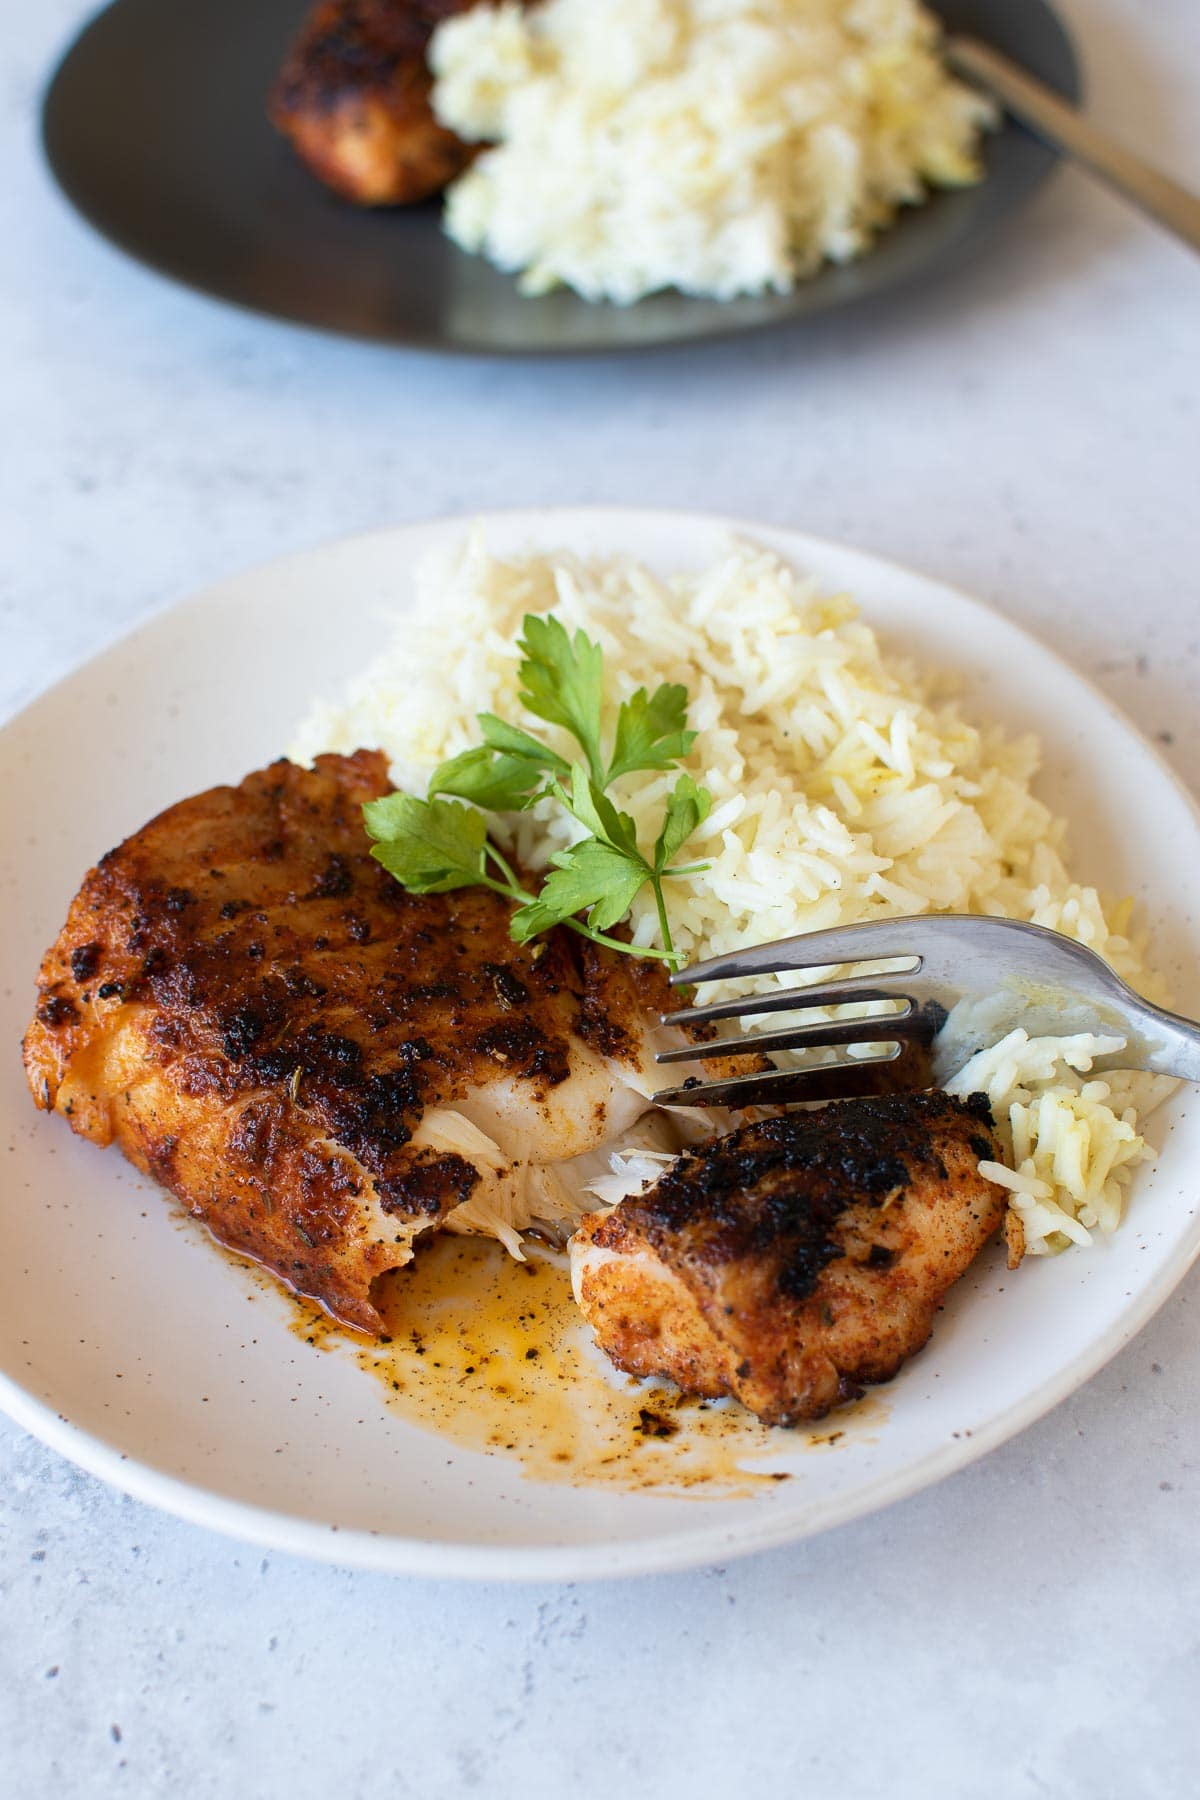 Blackened cod and rice, with a fork cutting into the fish fillet.